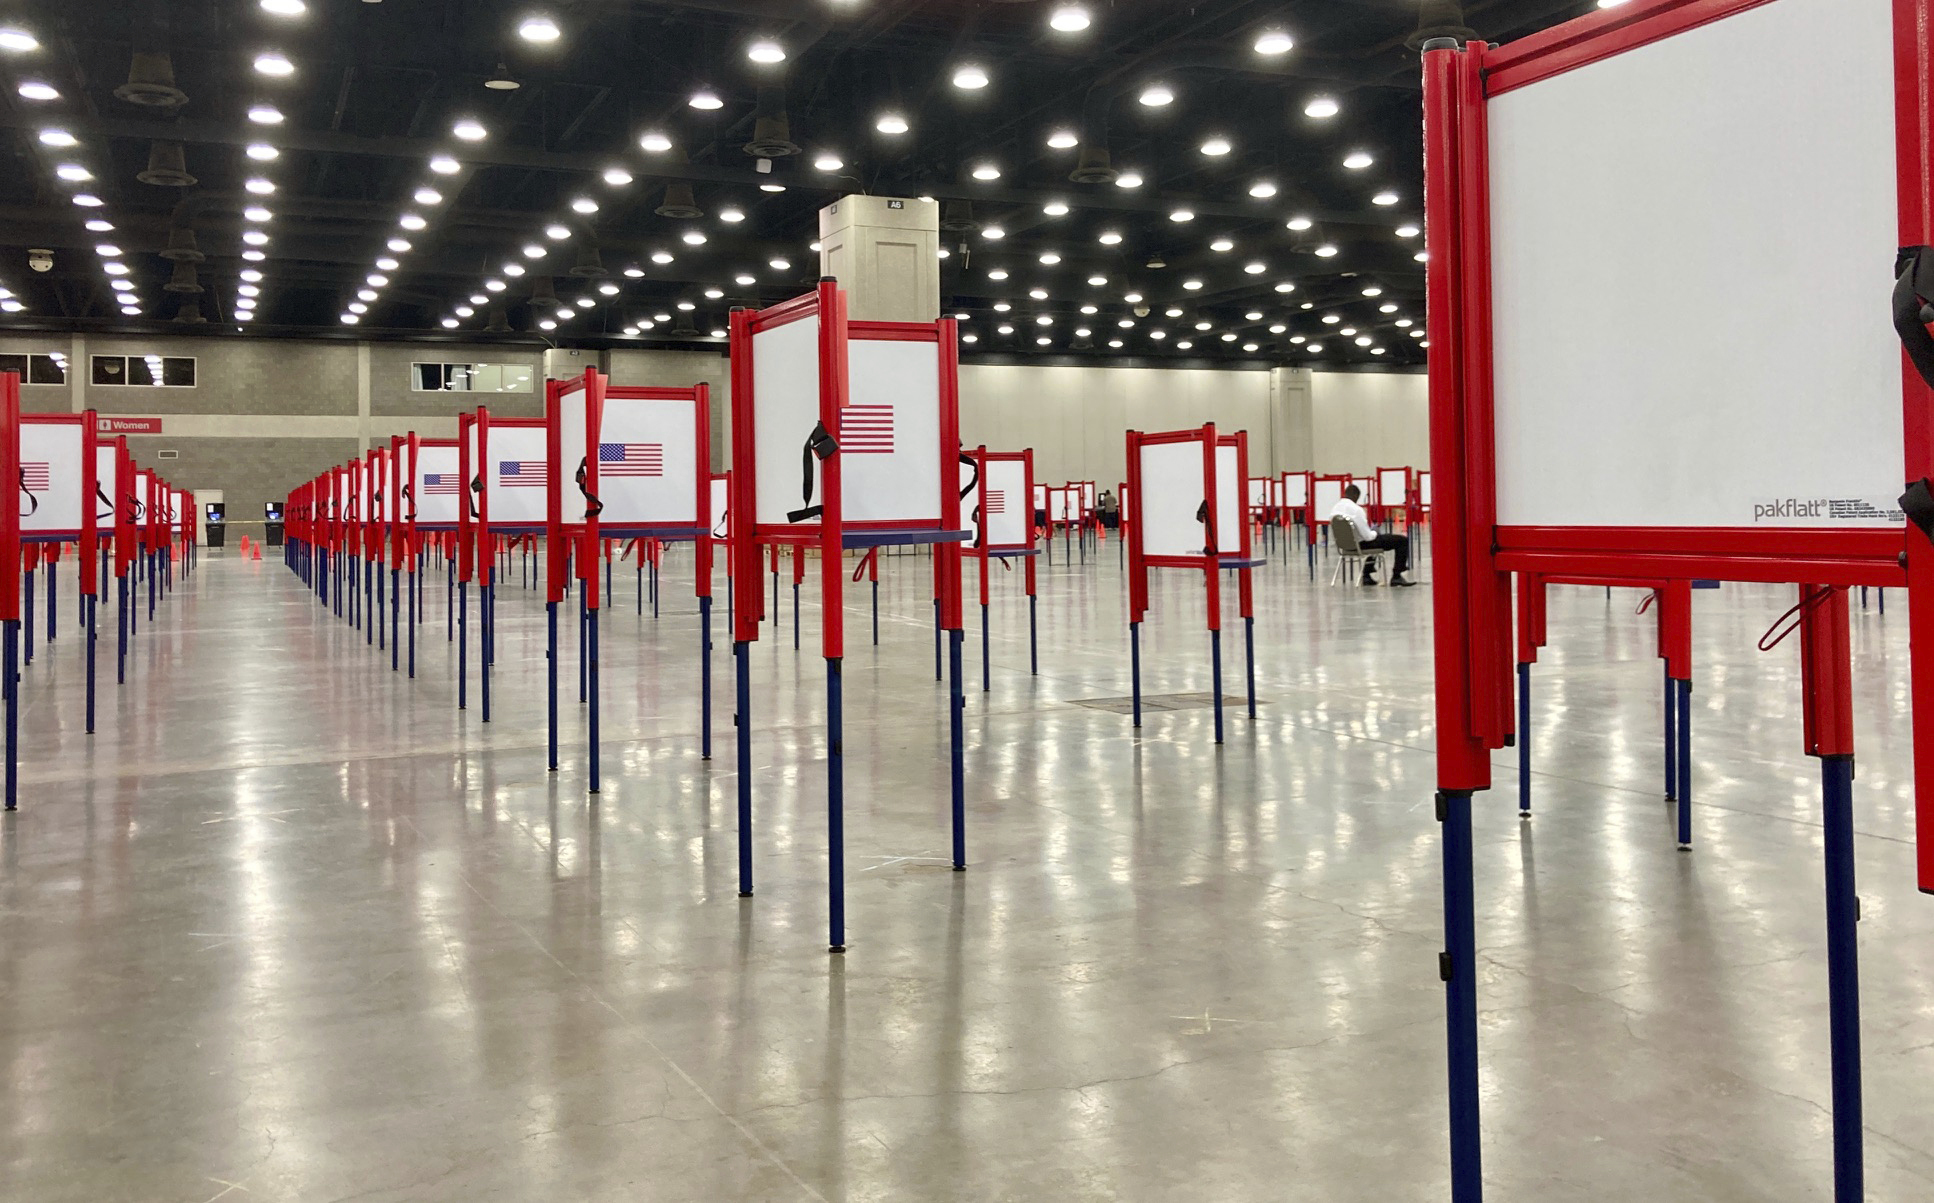 Voting stations are set up for the primary election at the Kentucky Exposition Center, on June 22, 2020, in Louisville, Ky.